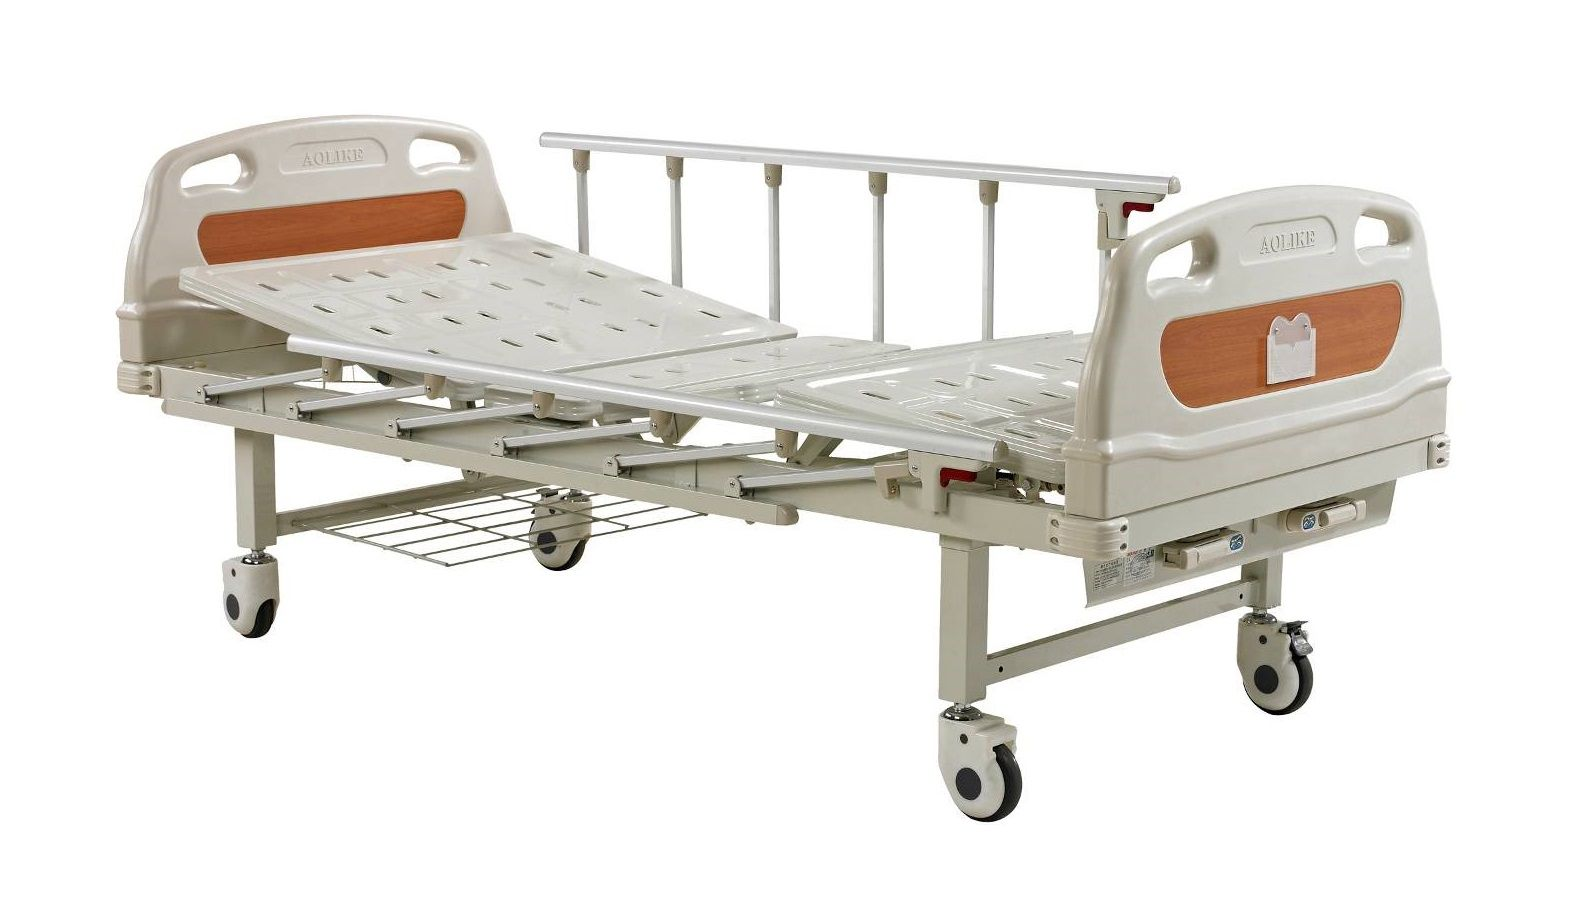 Cama Hospitalar Manual 2 movimentos ALK06 A232P